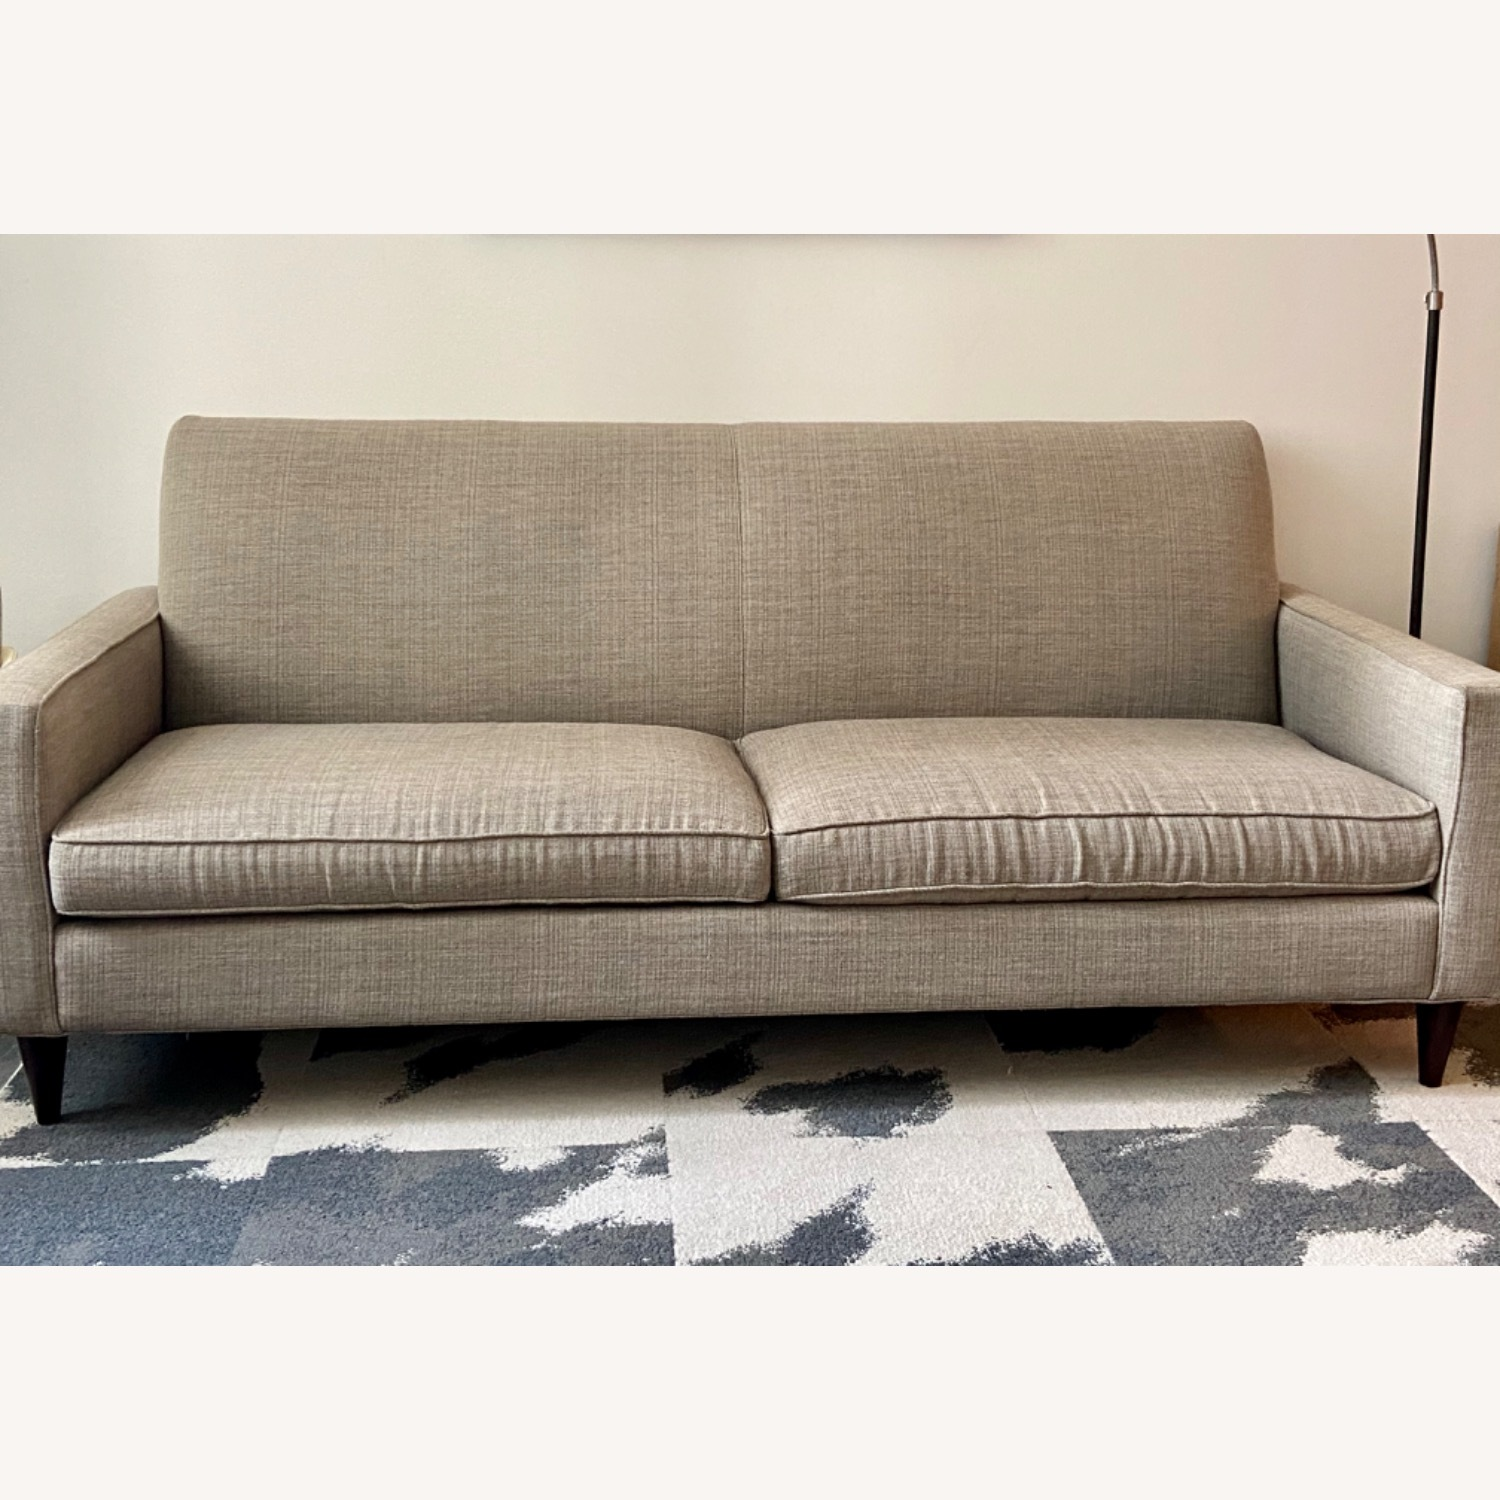 Room & Board Custom Grey Tweed Sofa - image-1